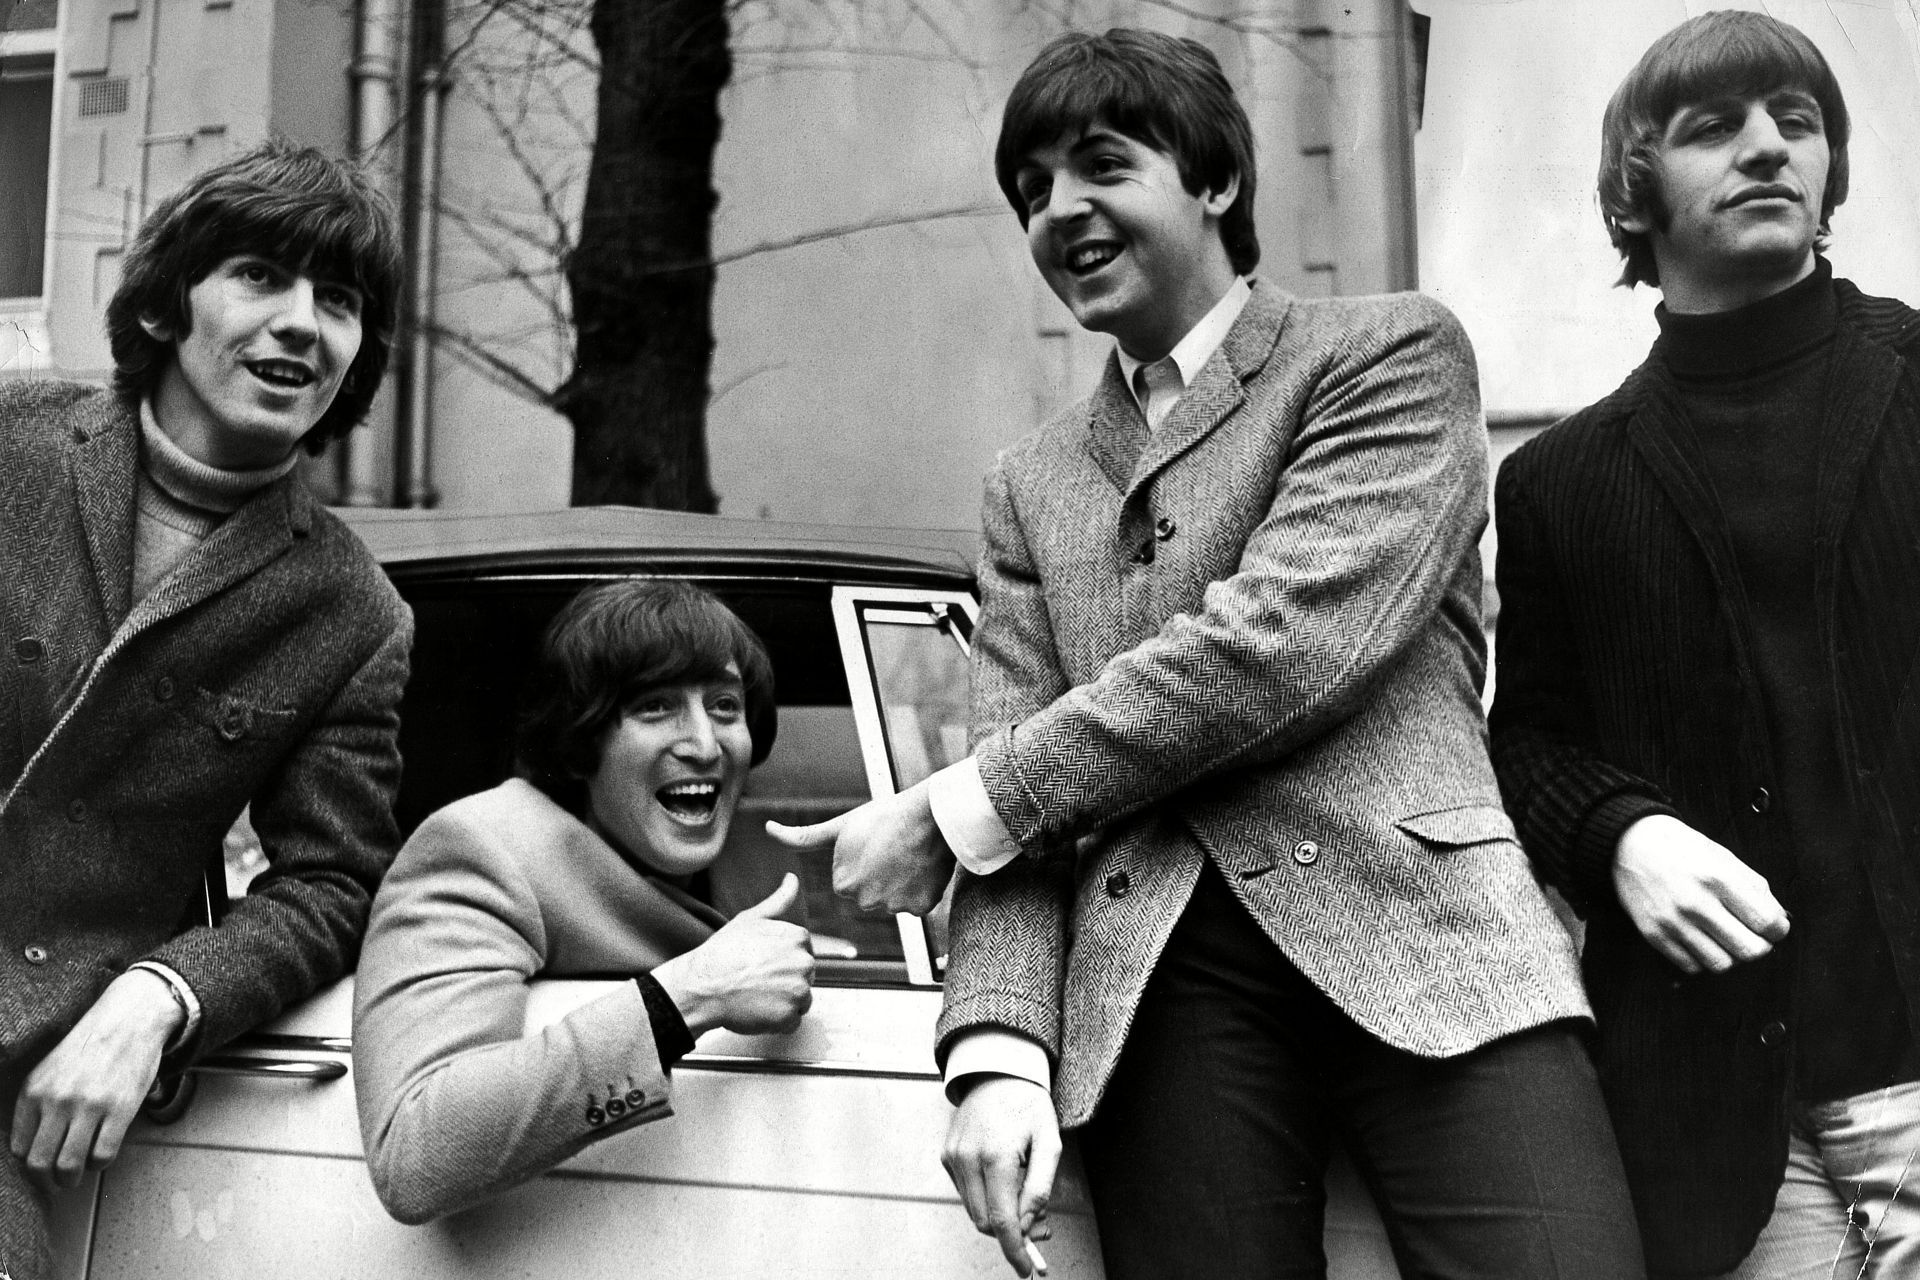 Pin on ❤❤❤THE BEATLES❤❤❤